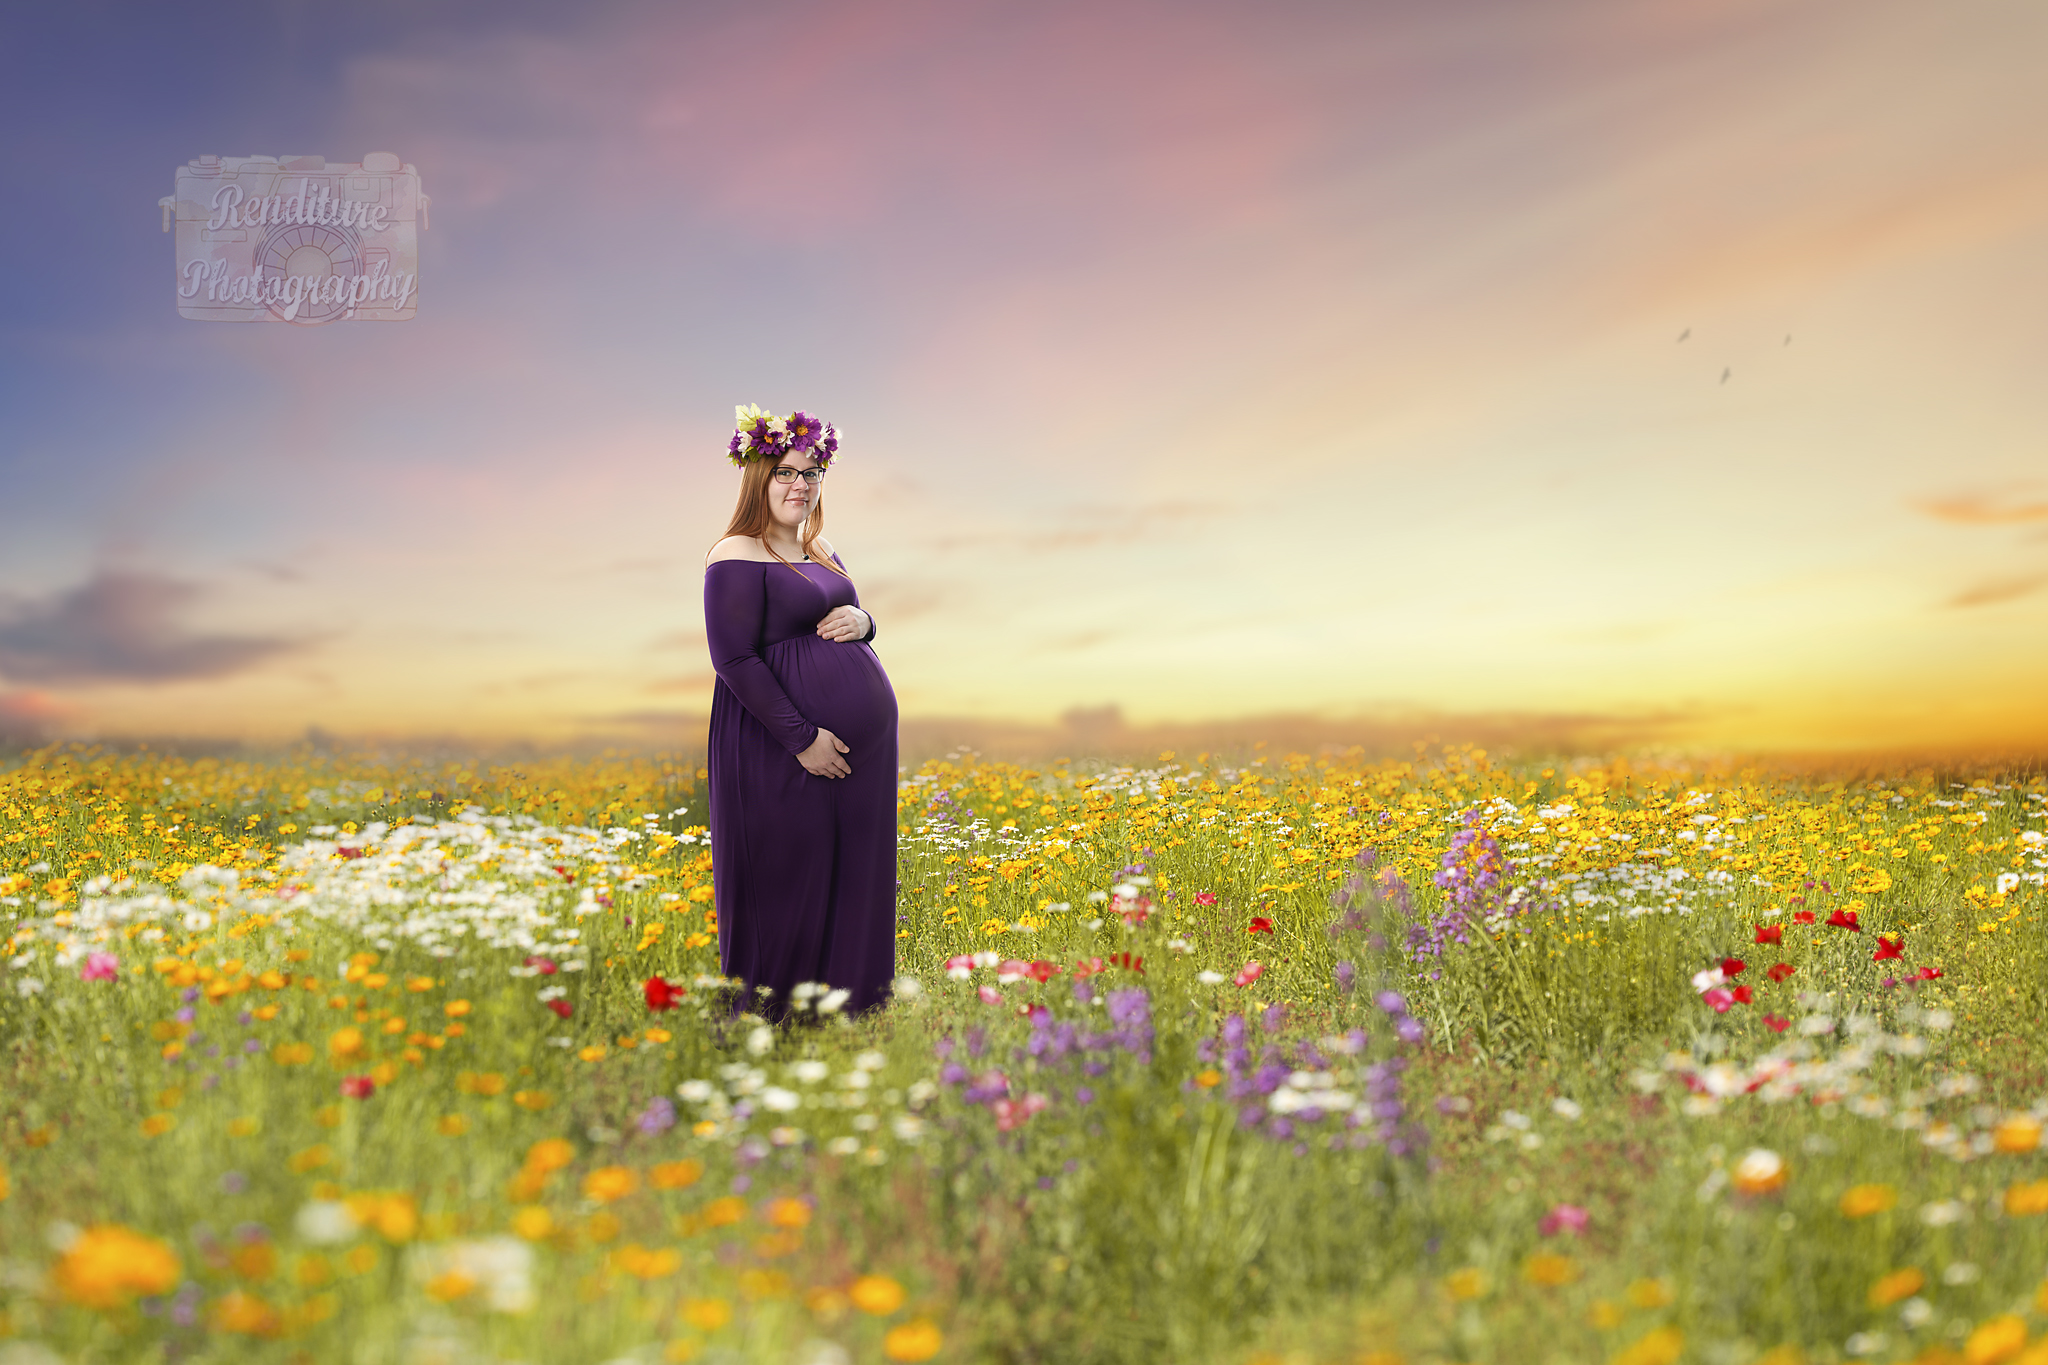 Saskatoon-Newborn-Family-Renditure-Photography-Photographer-Maternity-Pregnancy-Saskatchewan-531FBR.jpg